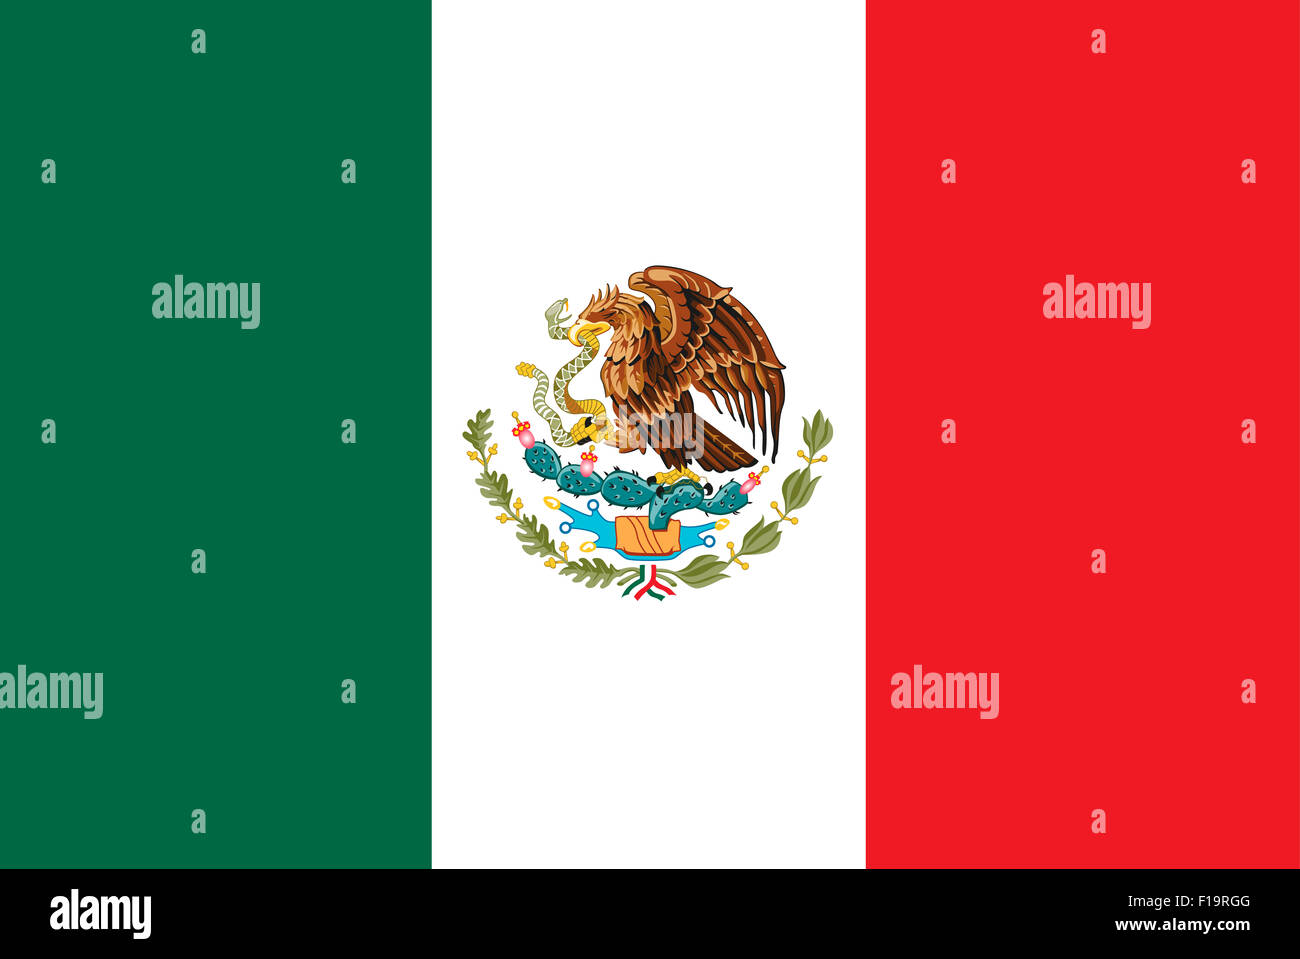 National flag of Mexico - Stock Image